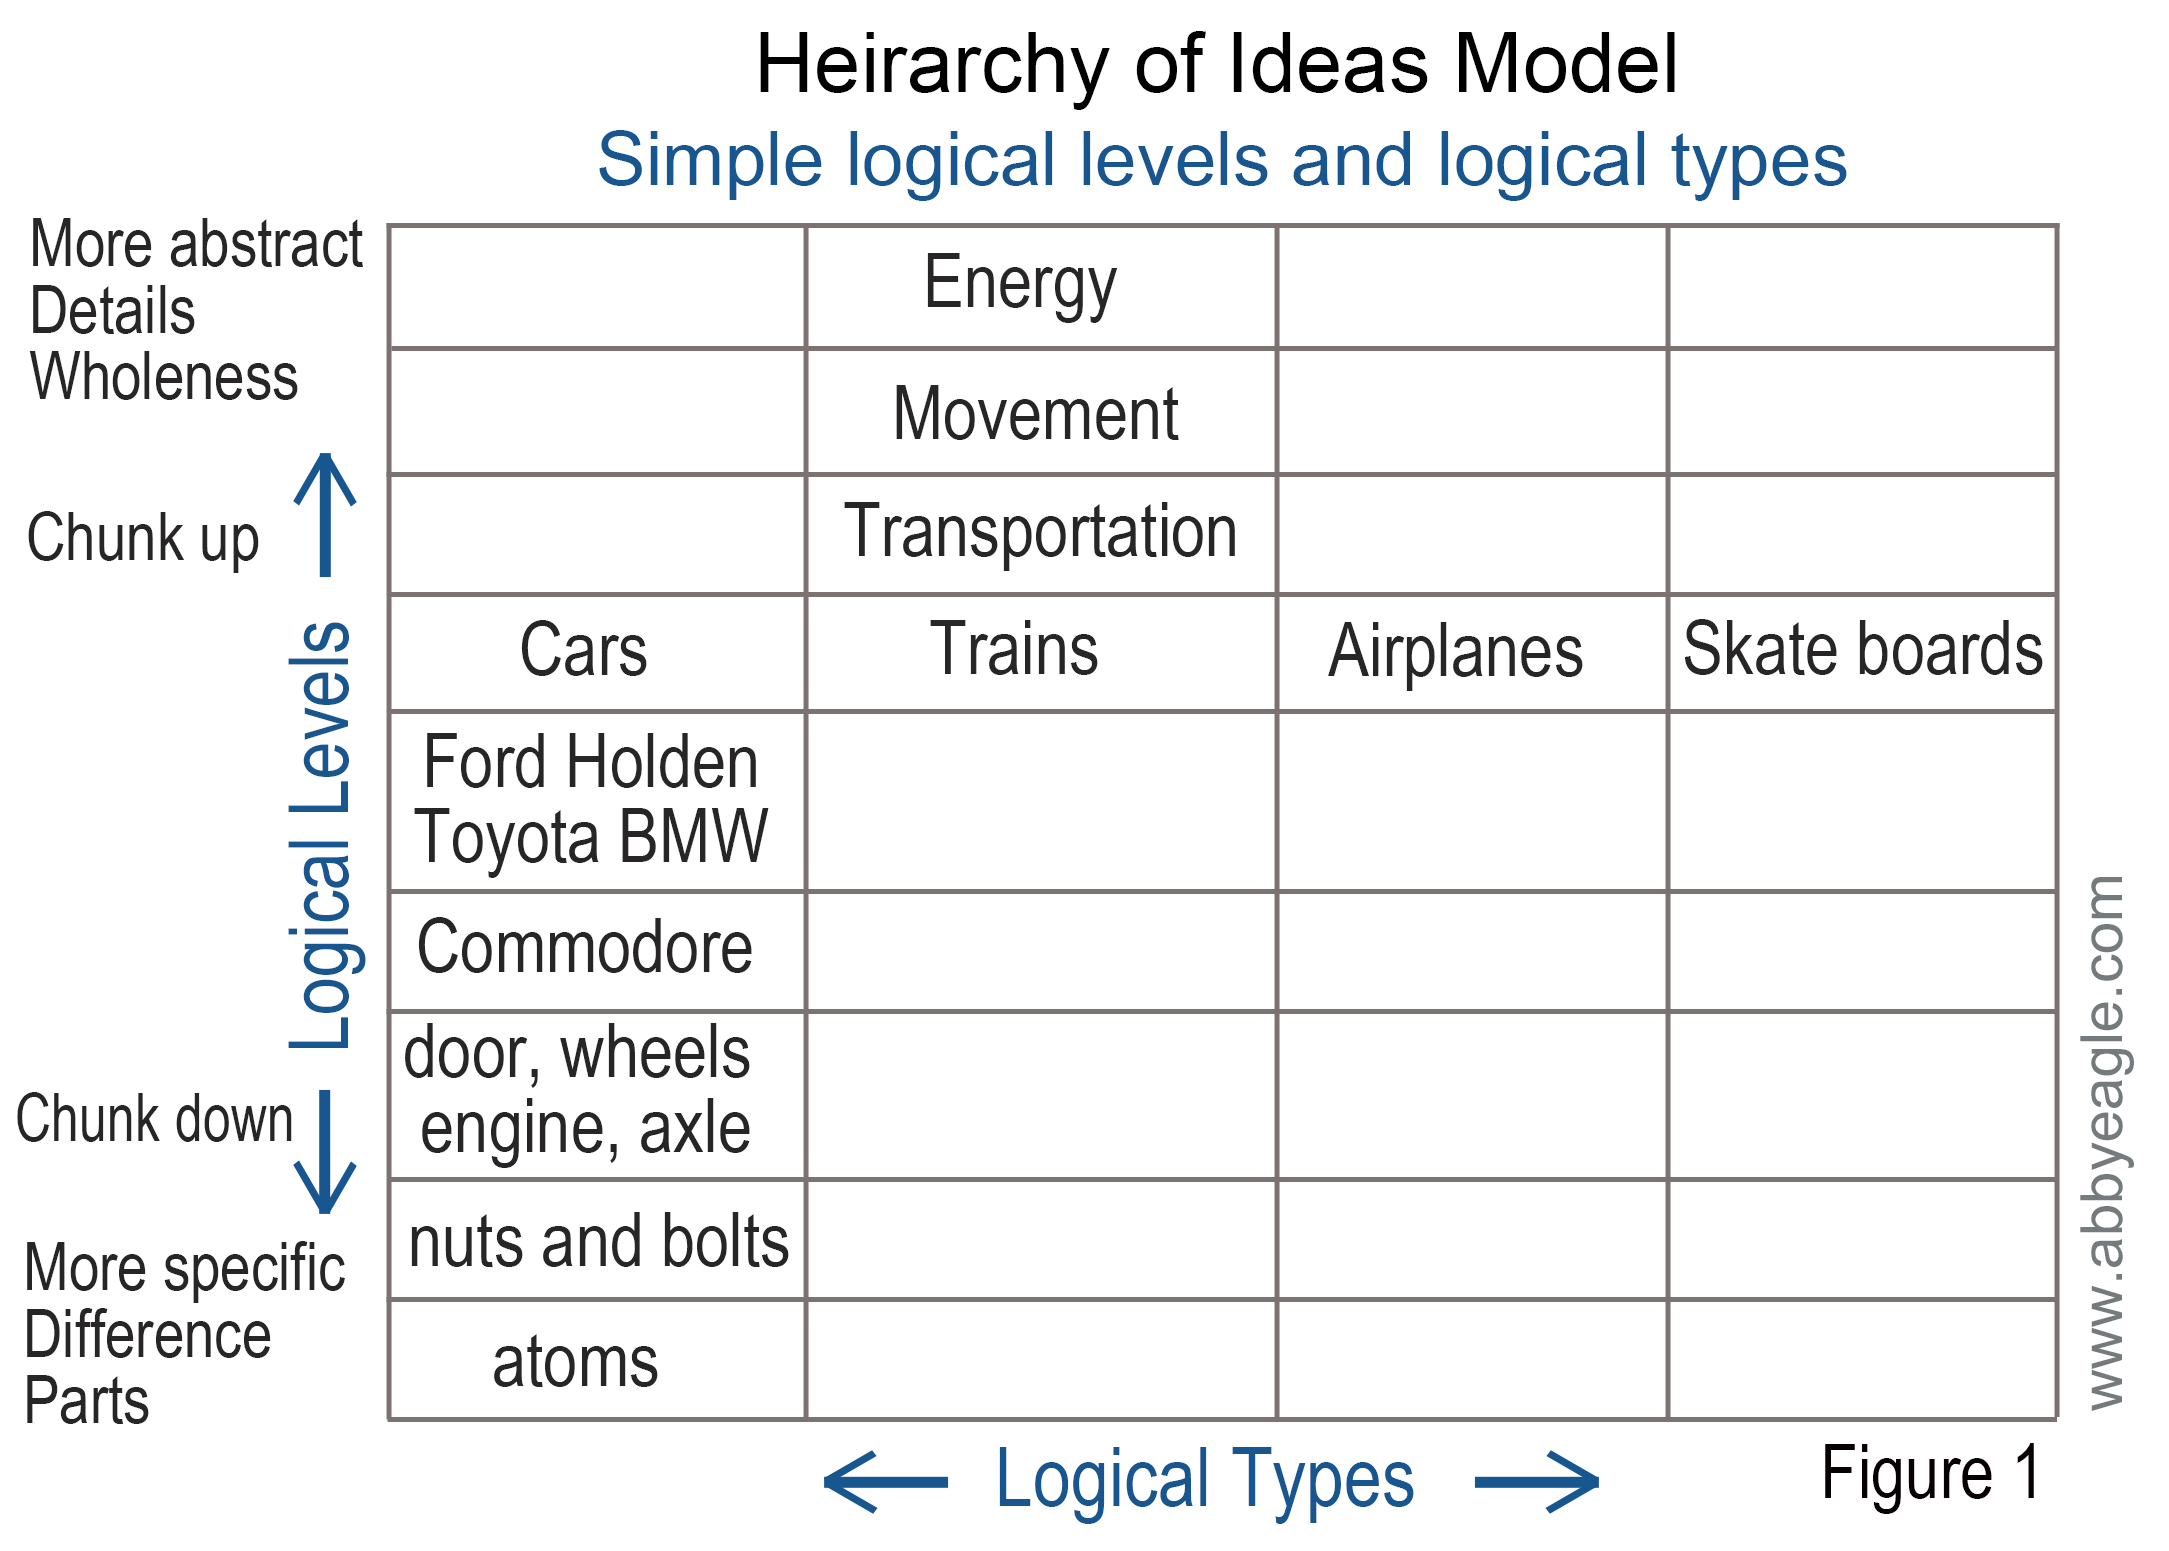 Heirarchy of ideas model - NLP logical levels and types